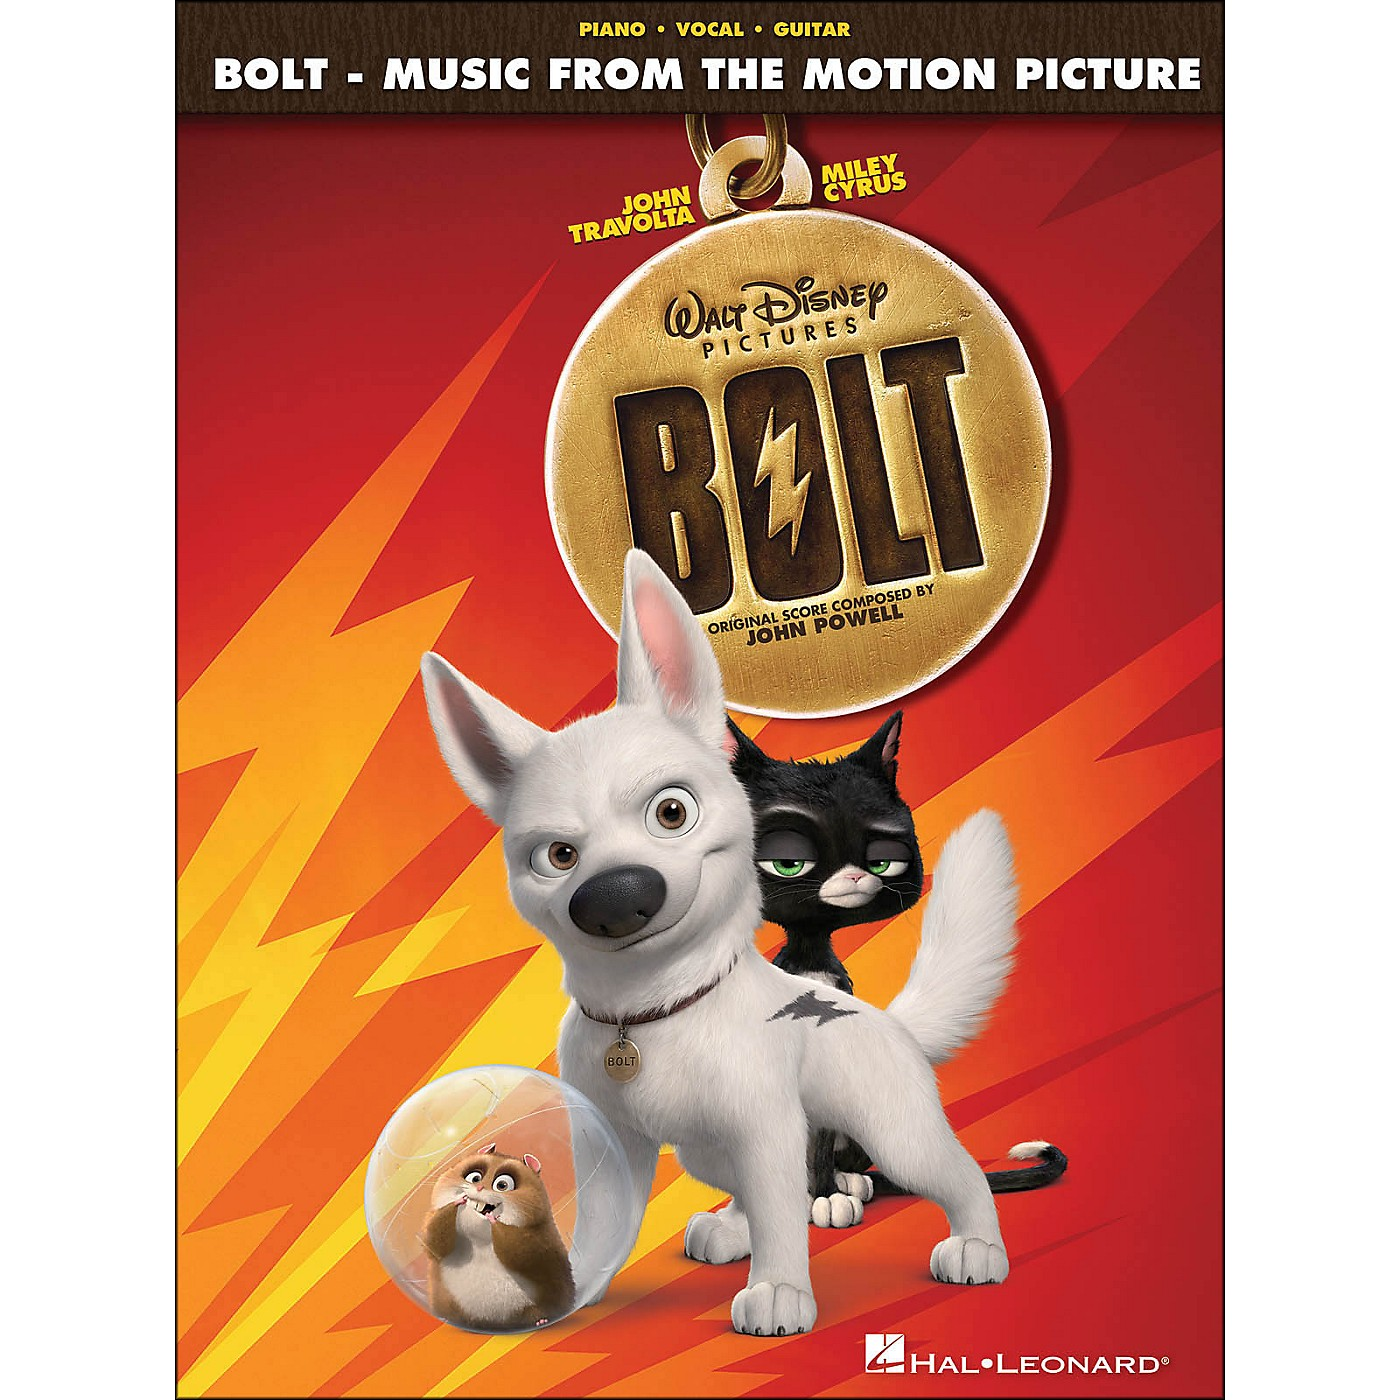 Hal Leonard Bolt - Music From The Motion Picture Soundtrack arranged for piano, vocal, and guitar (P/V/G) thumbnail